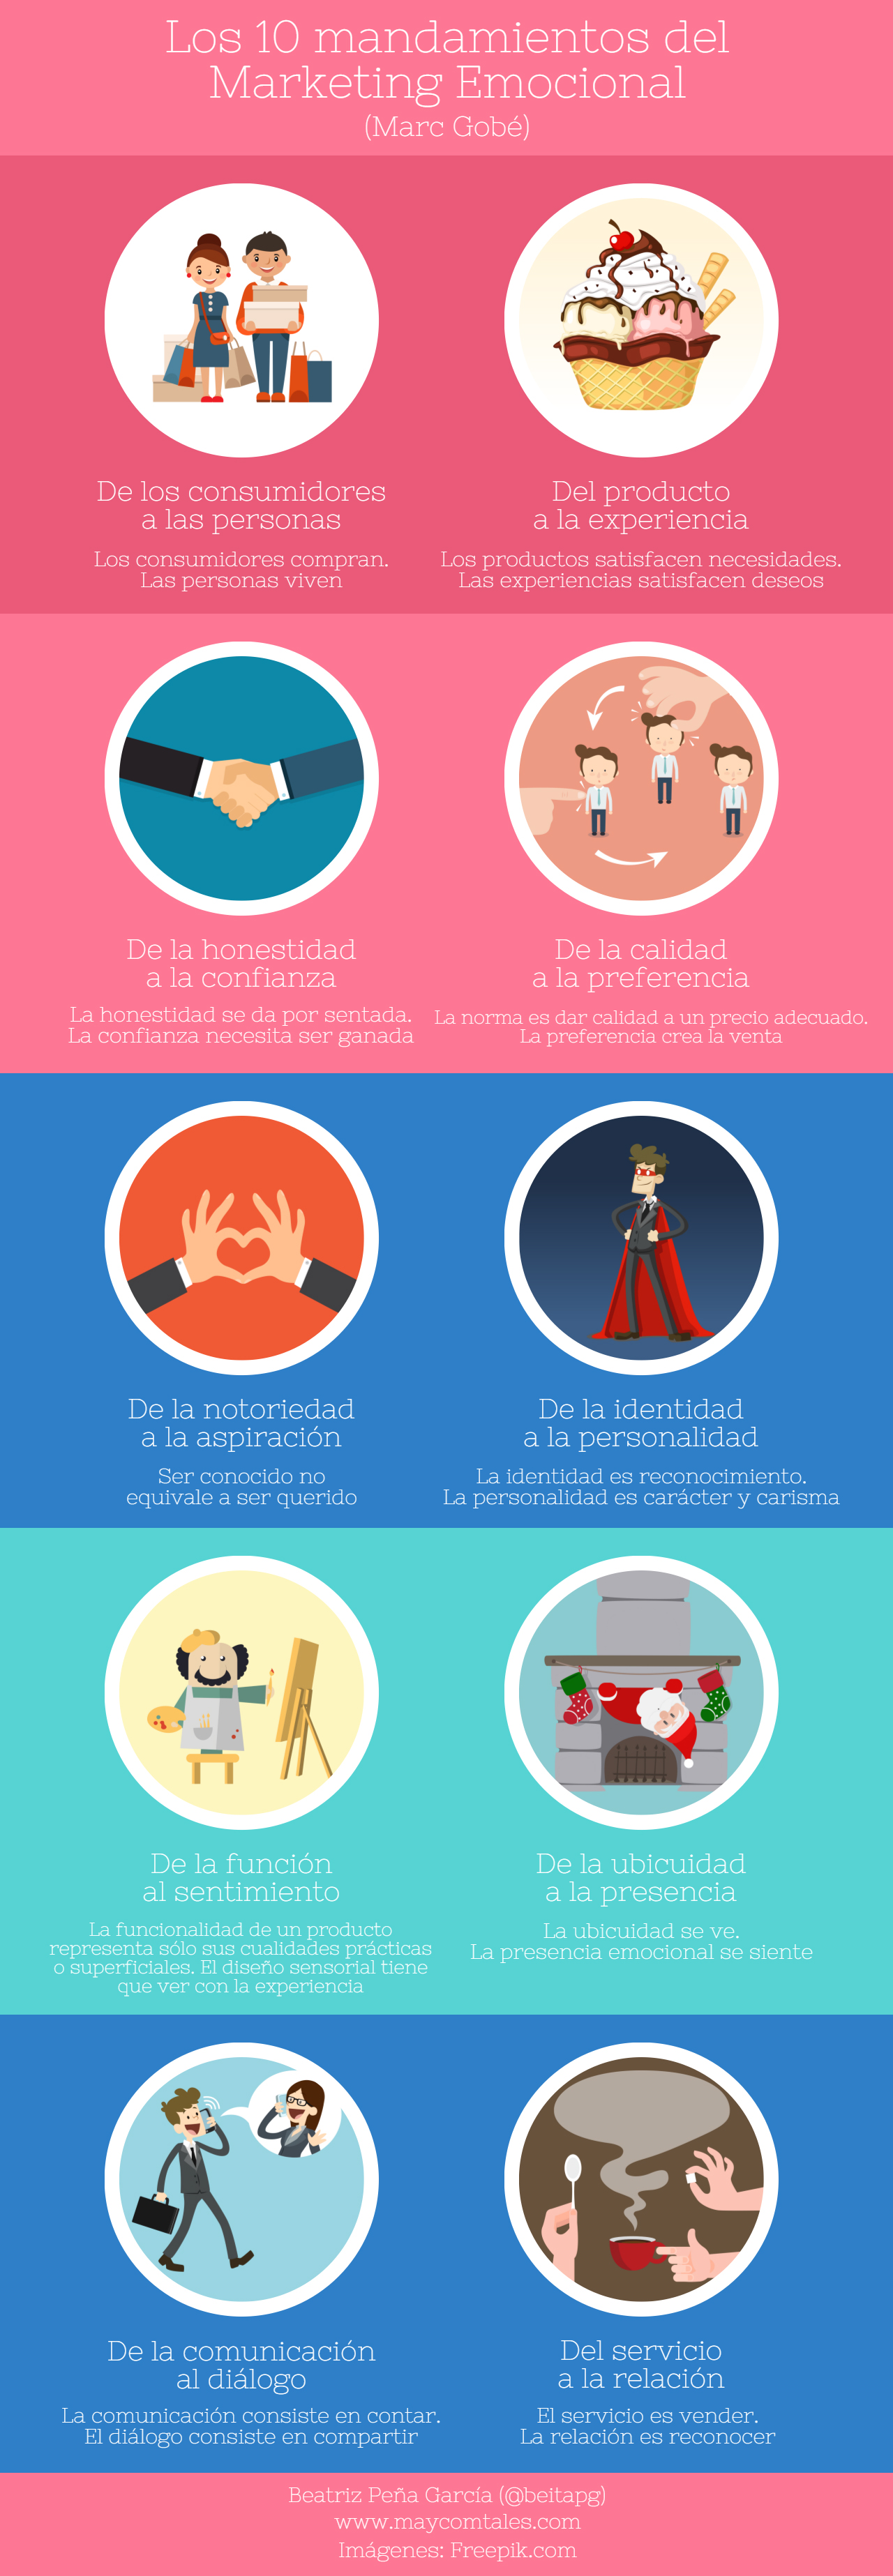 Los 10 mandamientos del marketing emocional